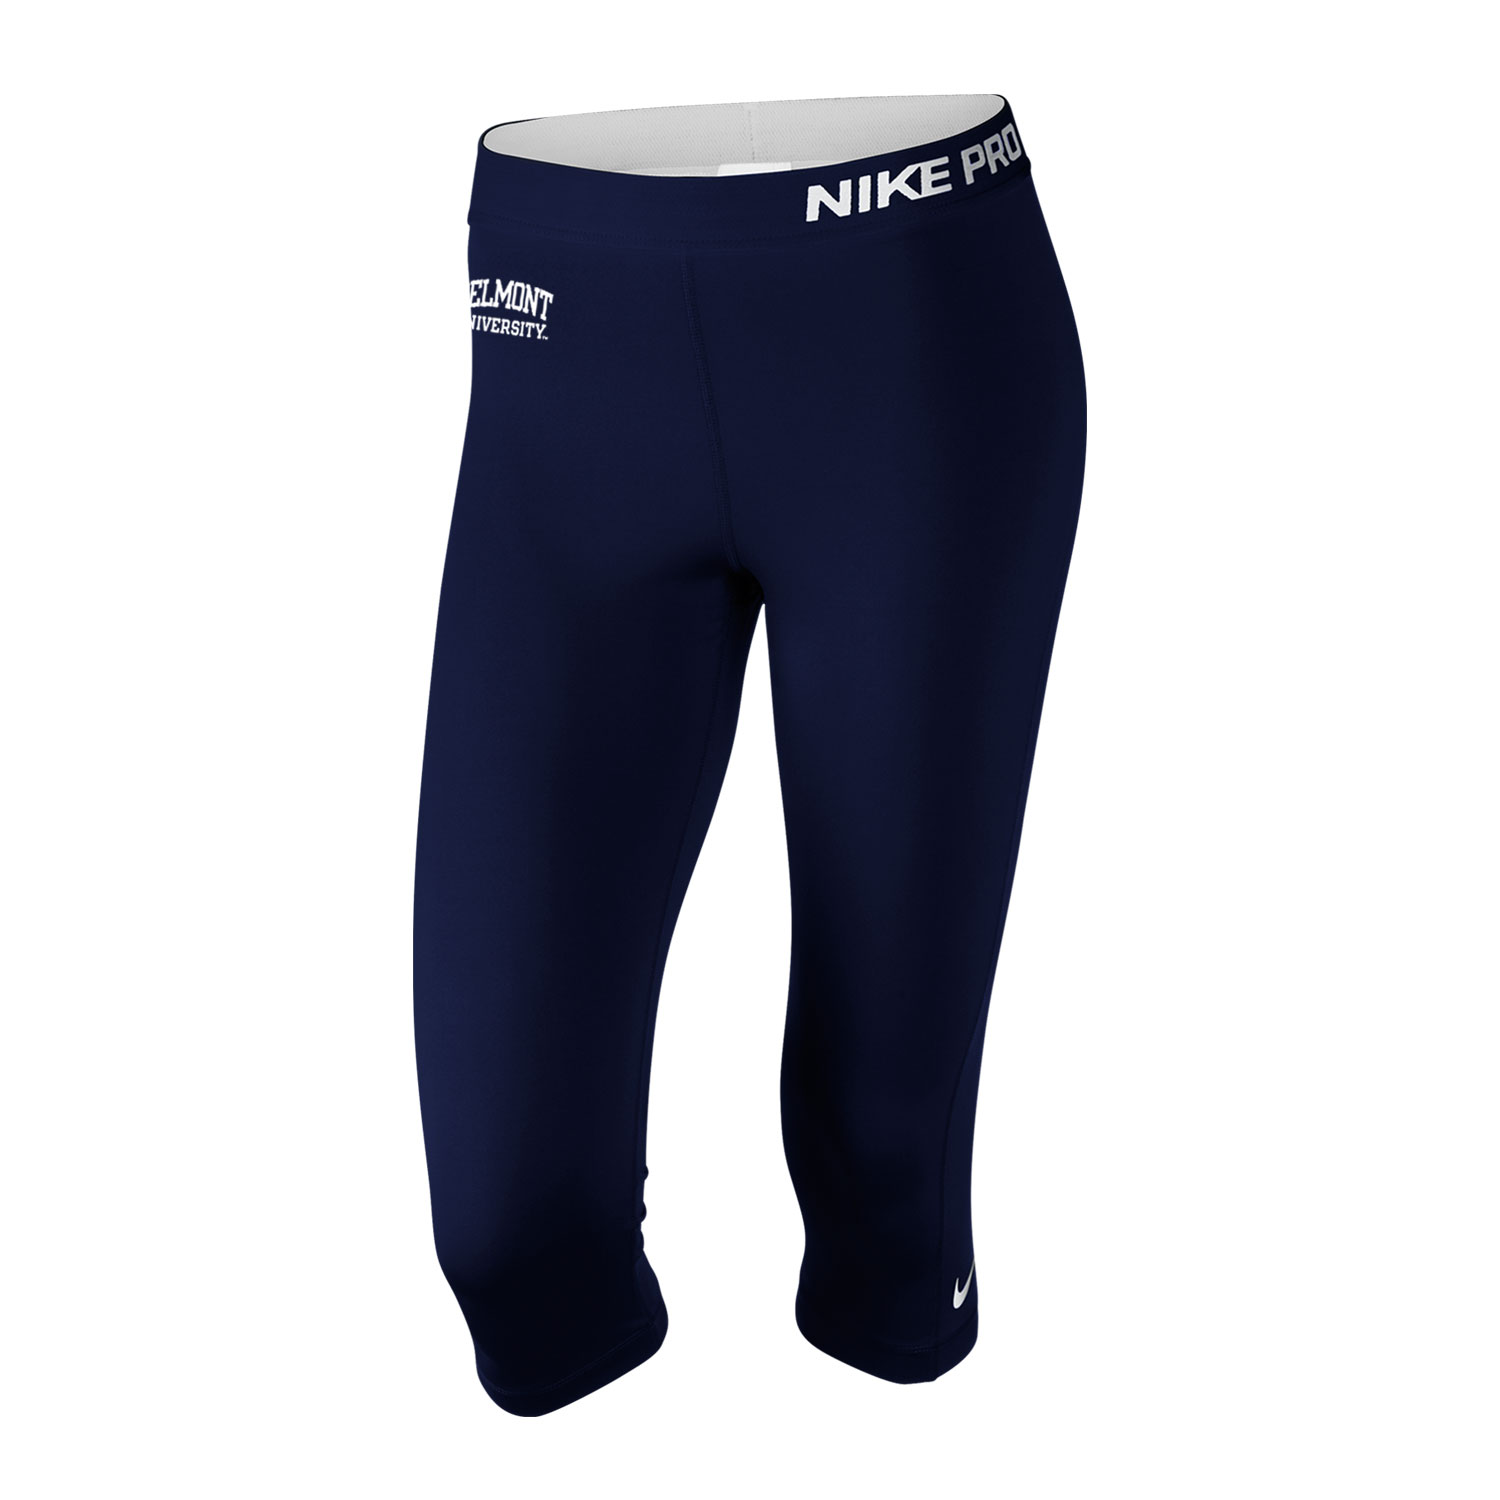 Image For LADIES NIKE PRO CAPRIS